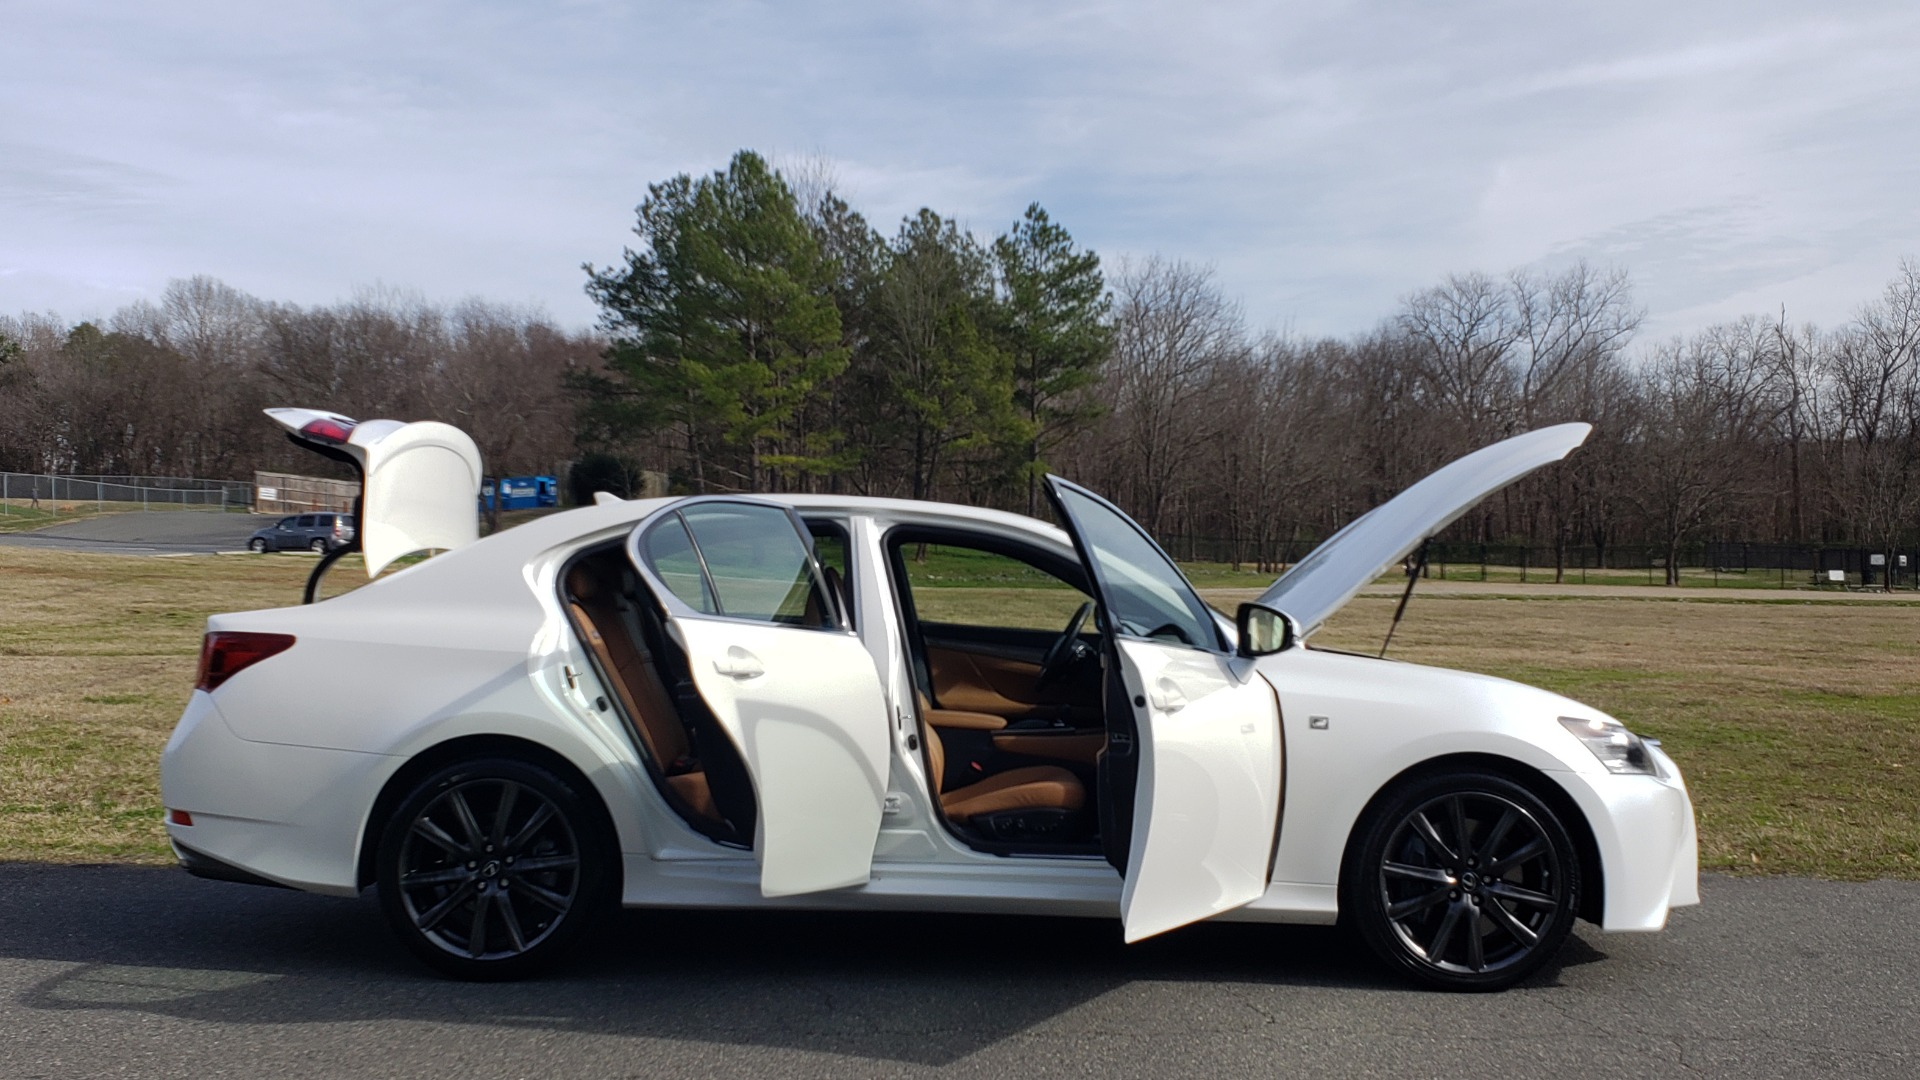 Used 2013 Lexus GS 350 F-SPORT / NAV / SUNROOF / BSM / PRK ASST / REARVIEW for sale Sold at Formula Imports in Charlotte NC 28227 9